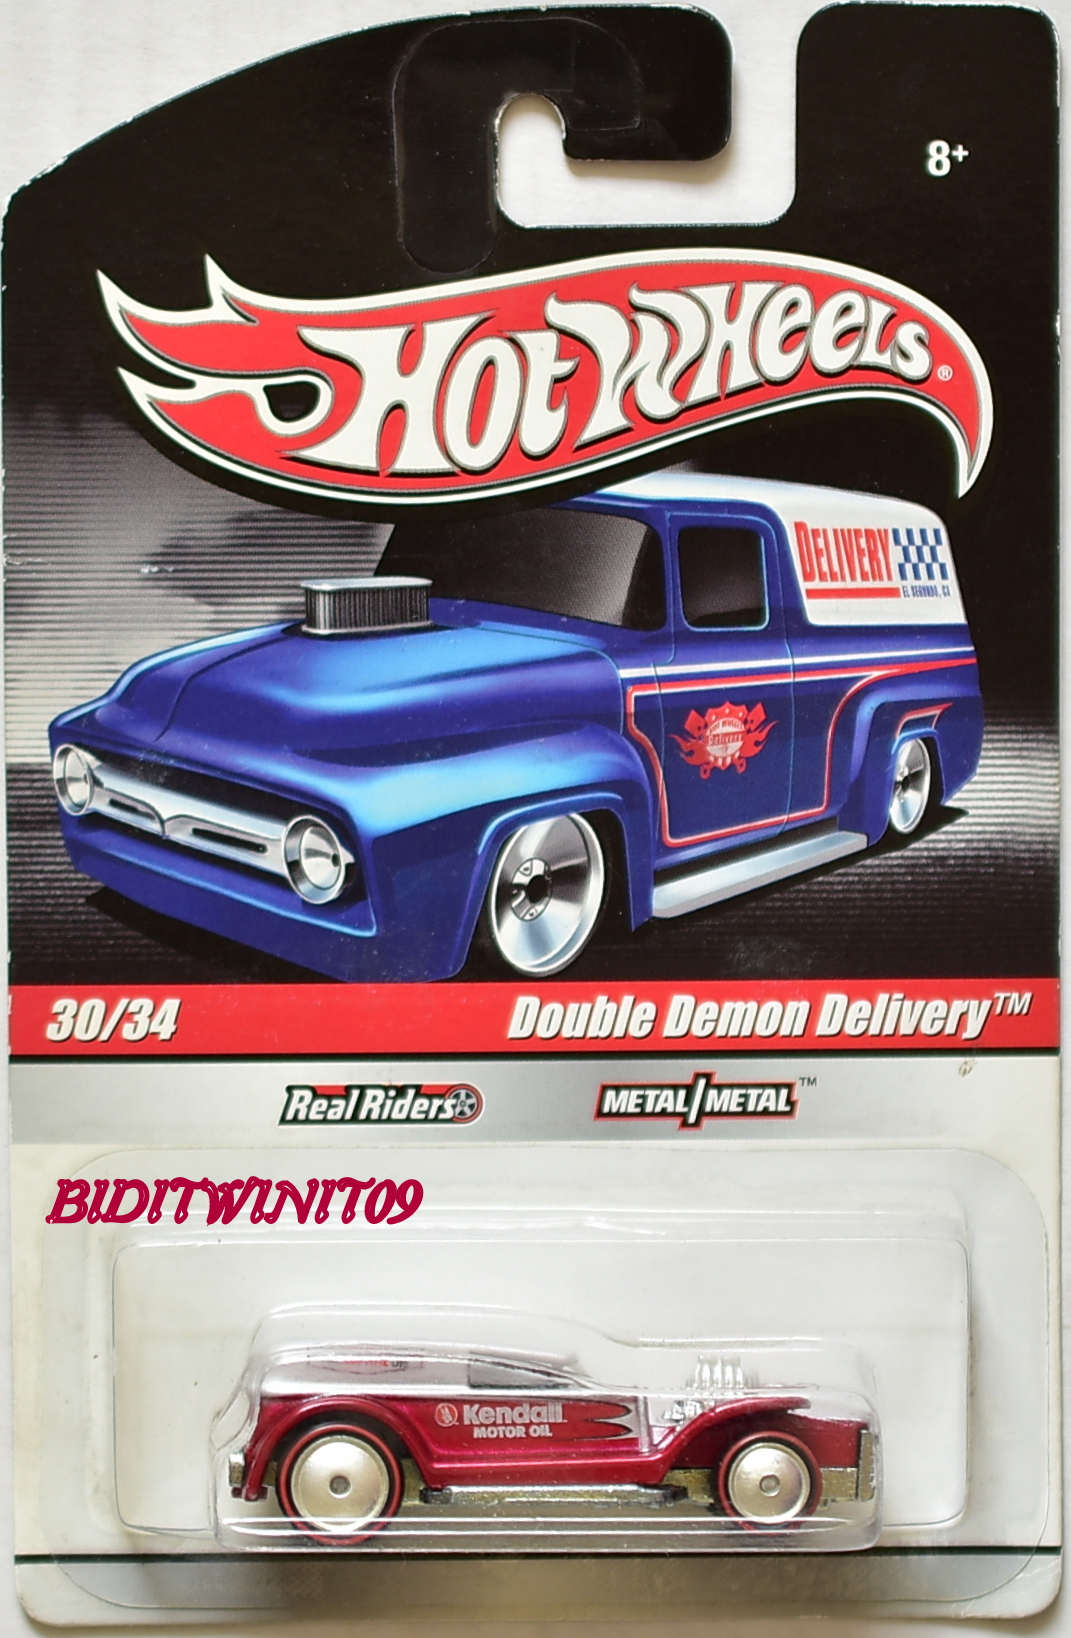 HOT WHEELS DELIVERY 30/34 DOUBLE DEMON DELIVERY